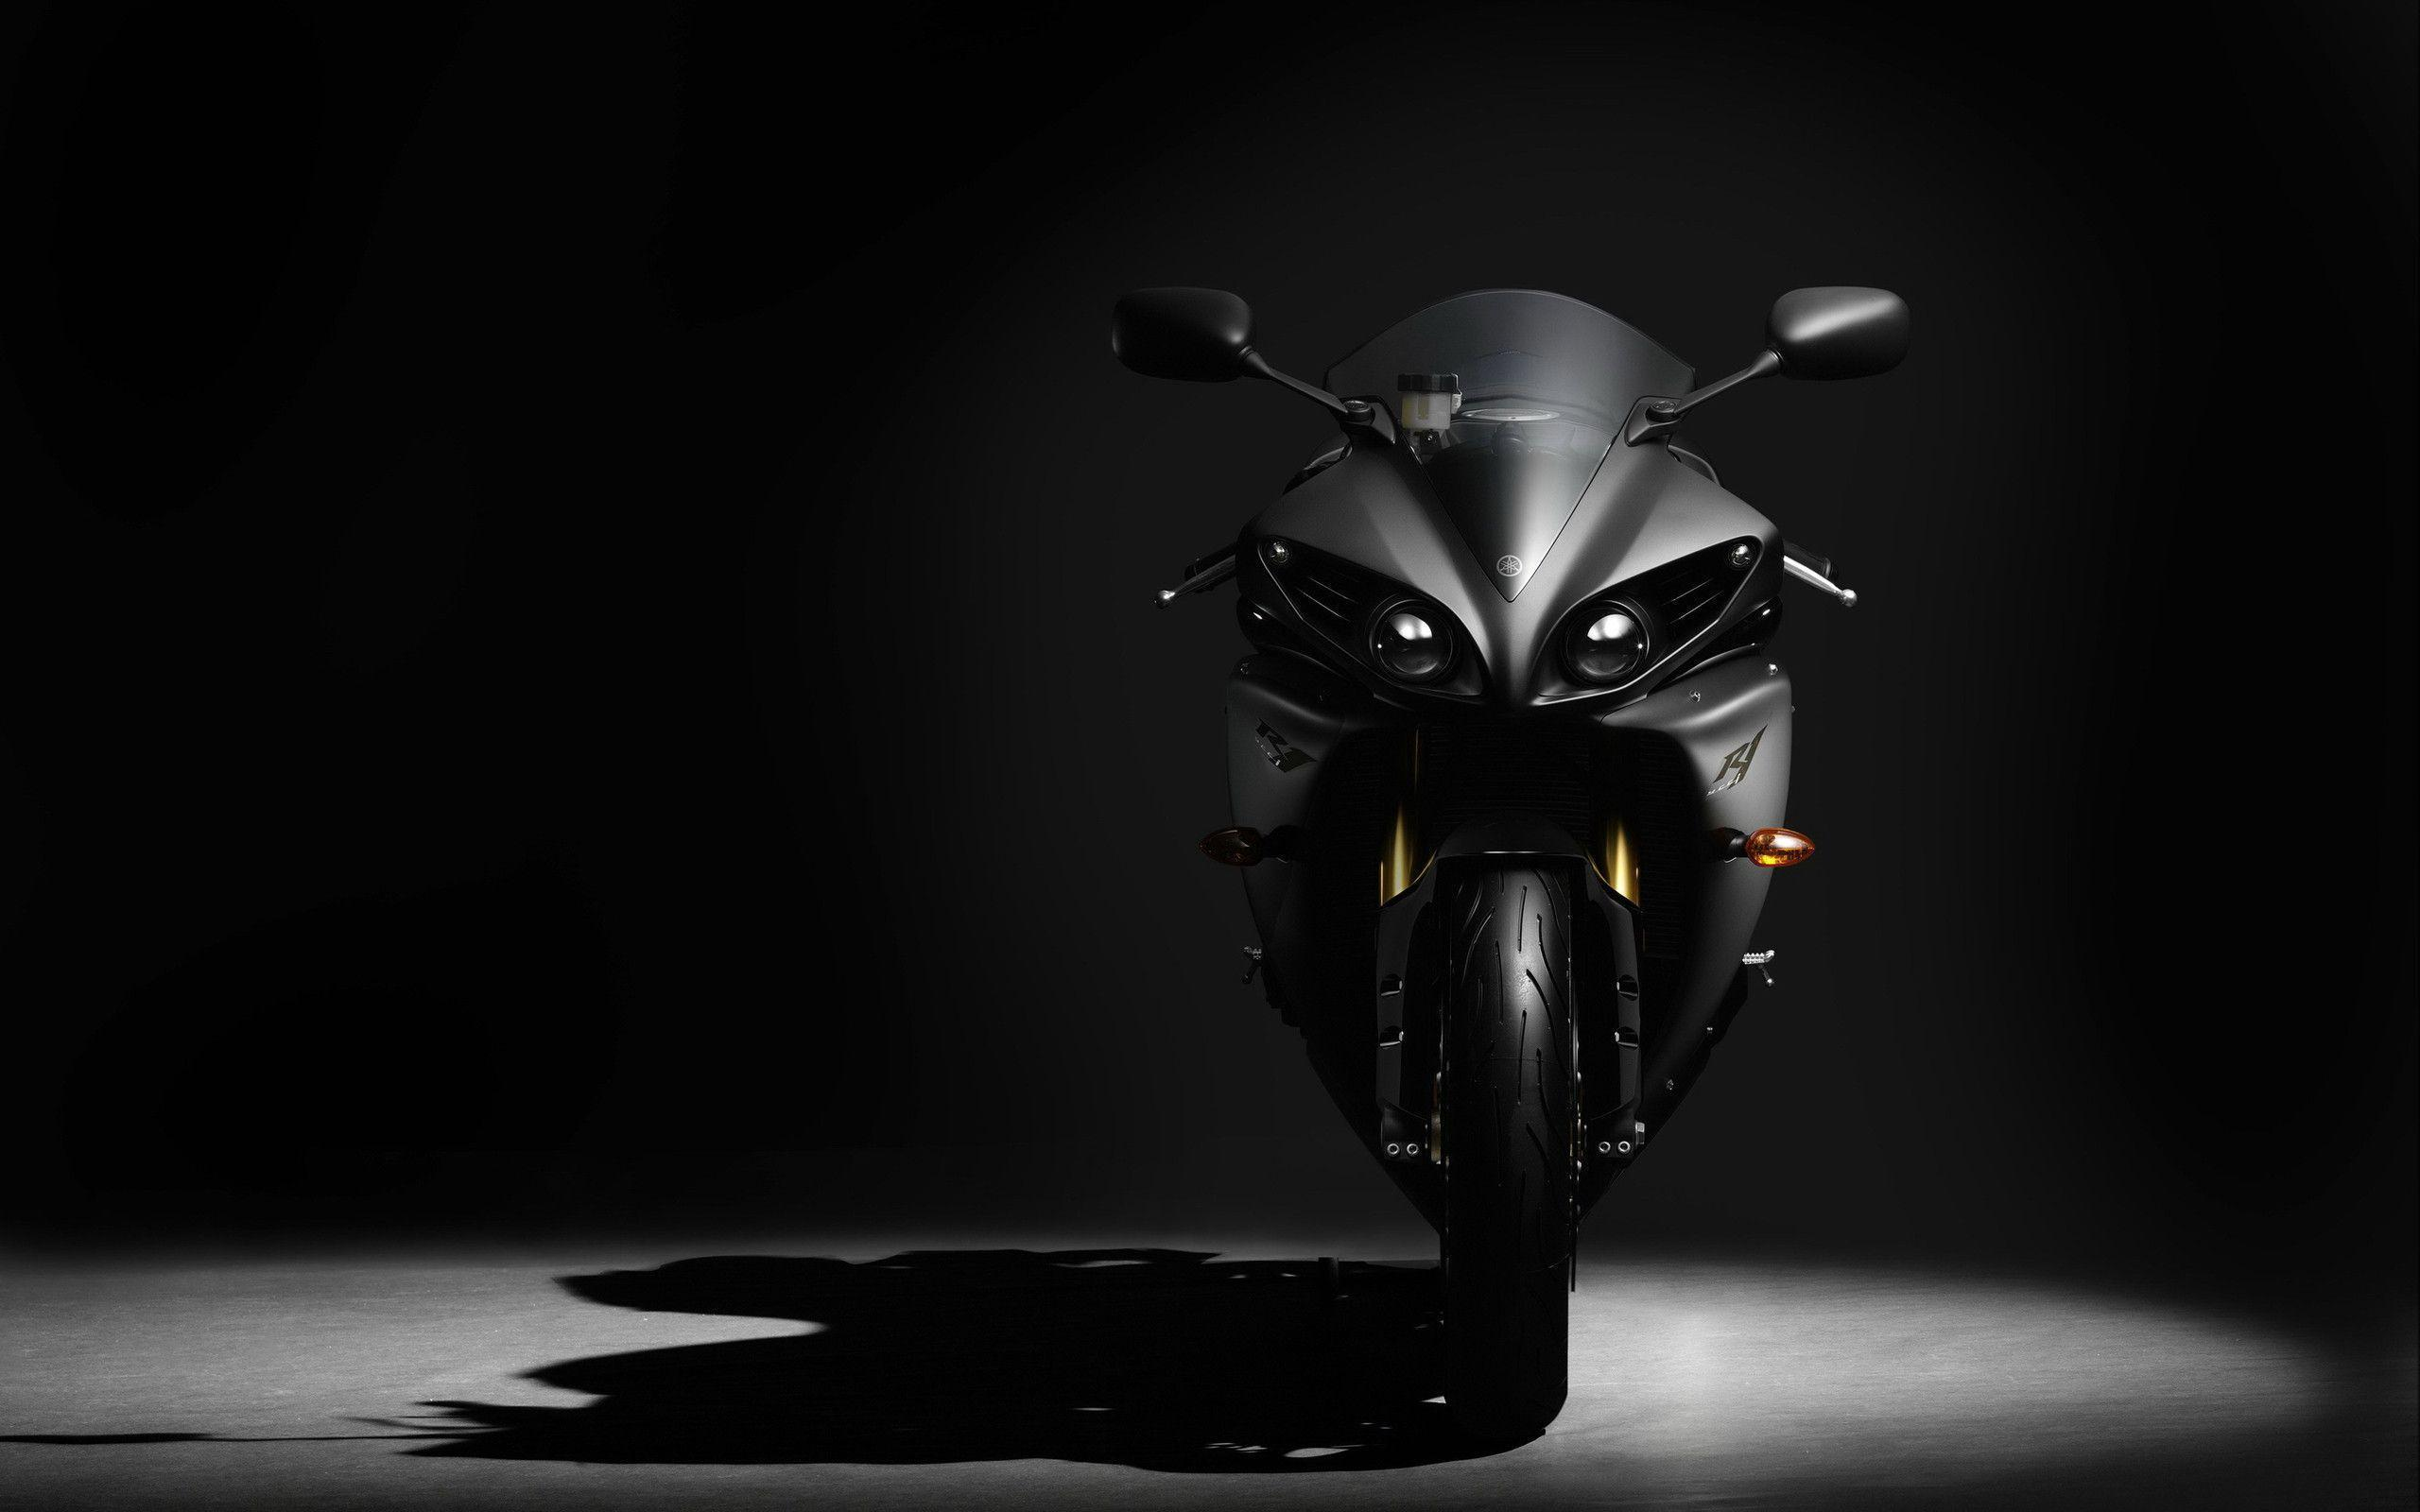 Hd wallpaper yamaha - Hd Yamaha Wallpaper Background Images For Download